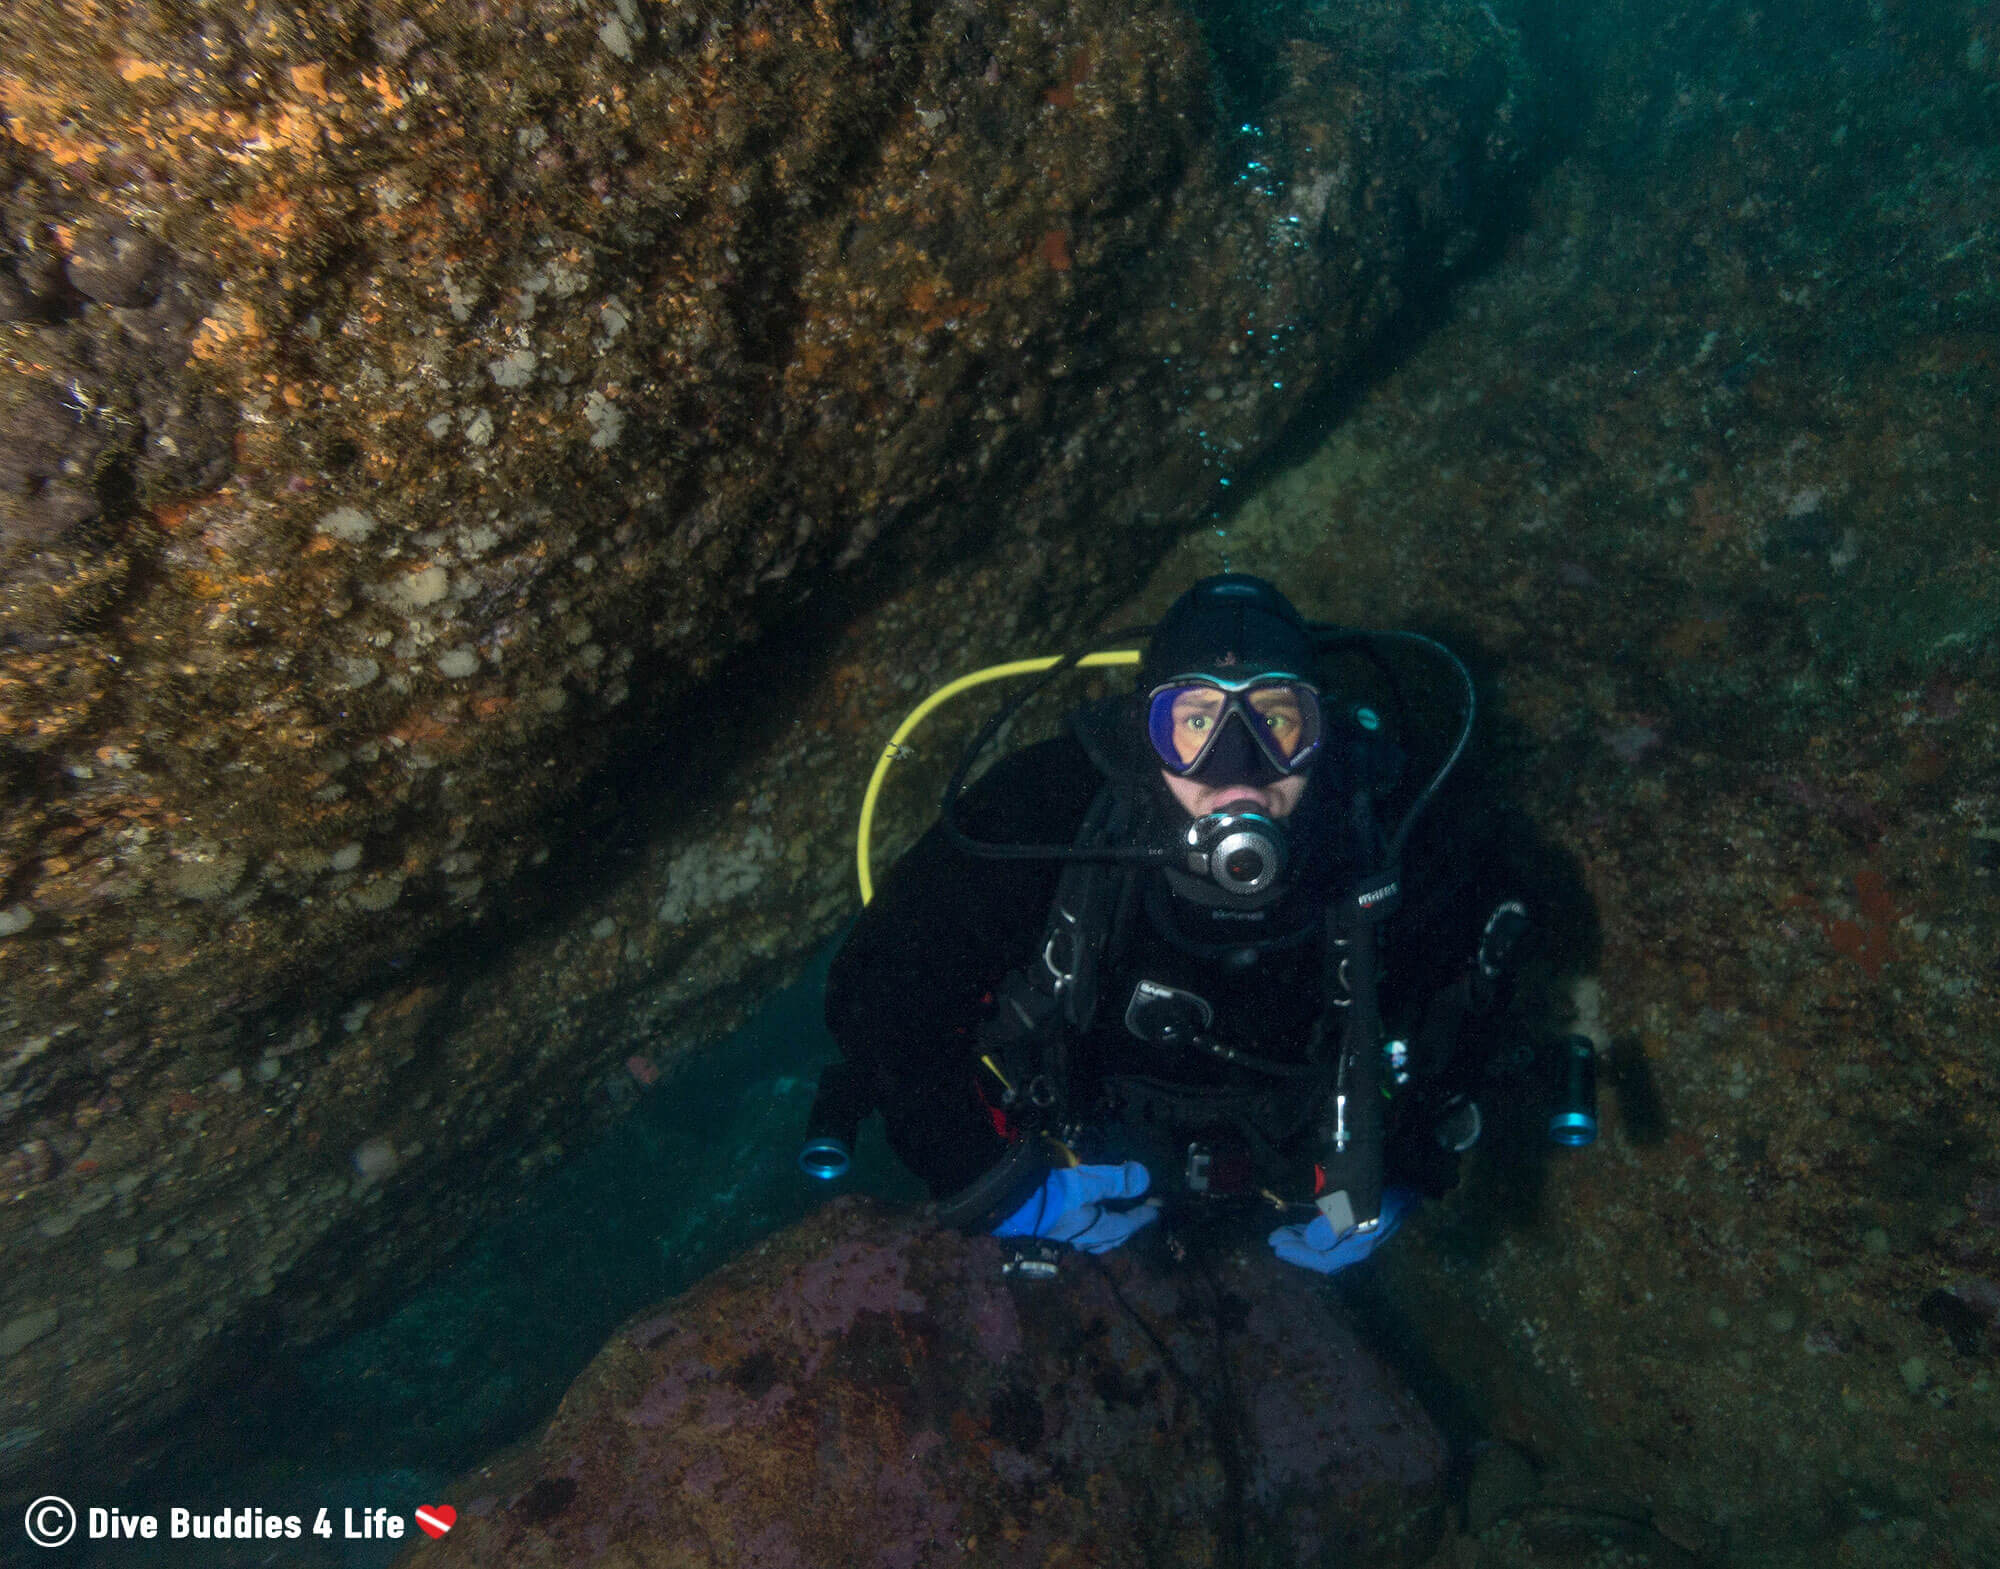 Joey Scuba Diving His Way Under a Boulder in Peniche, Portugal